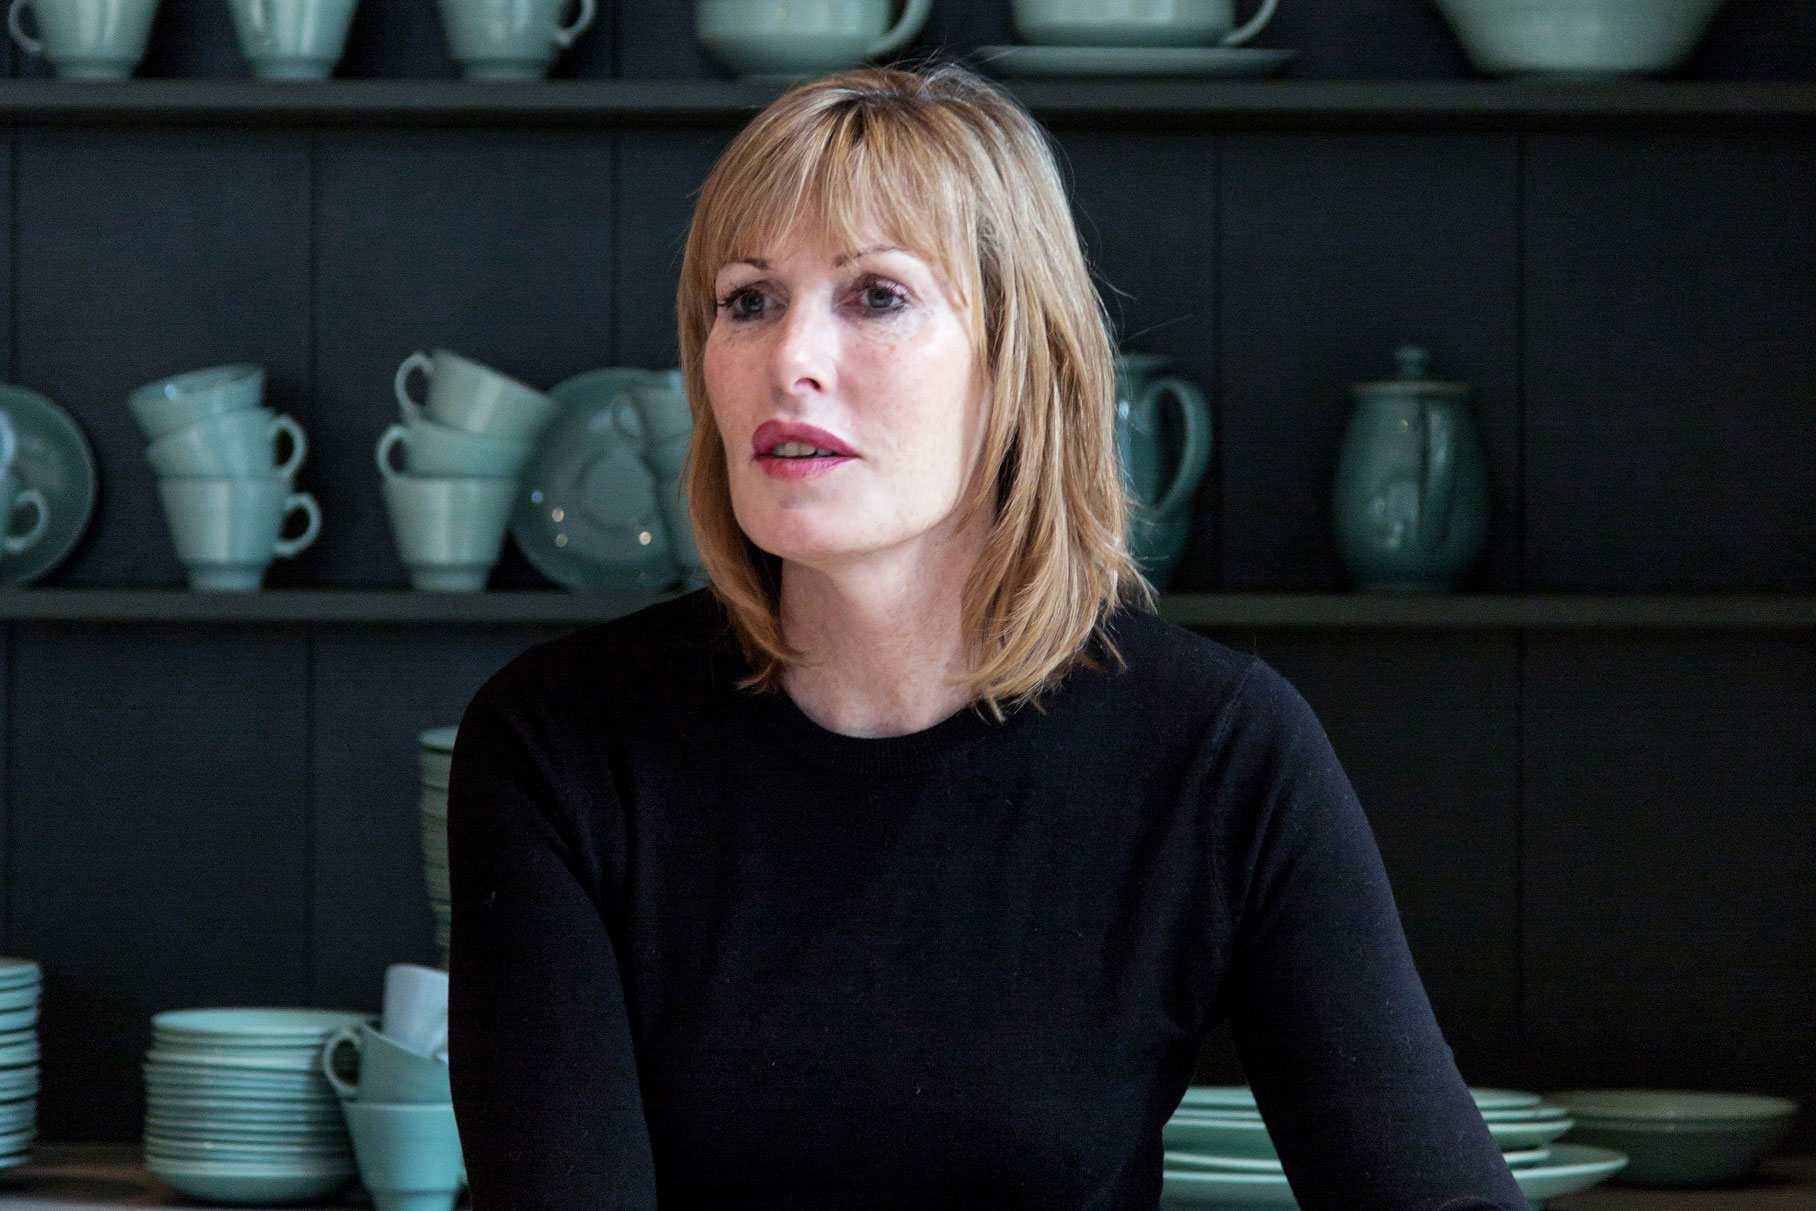 Skye Gyngell chef seated